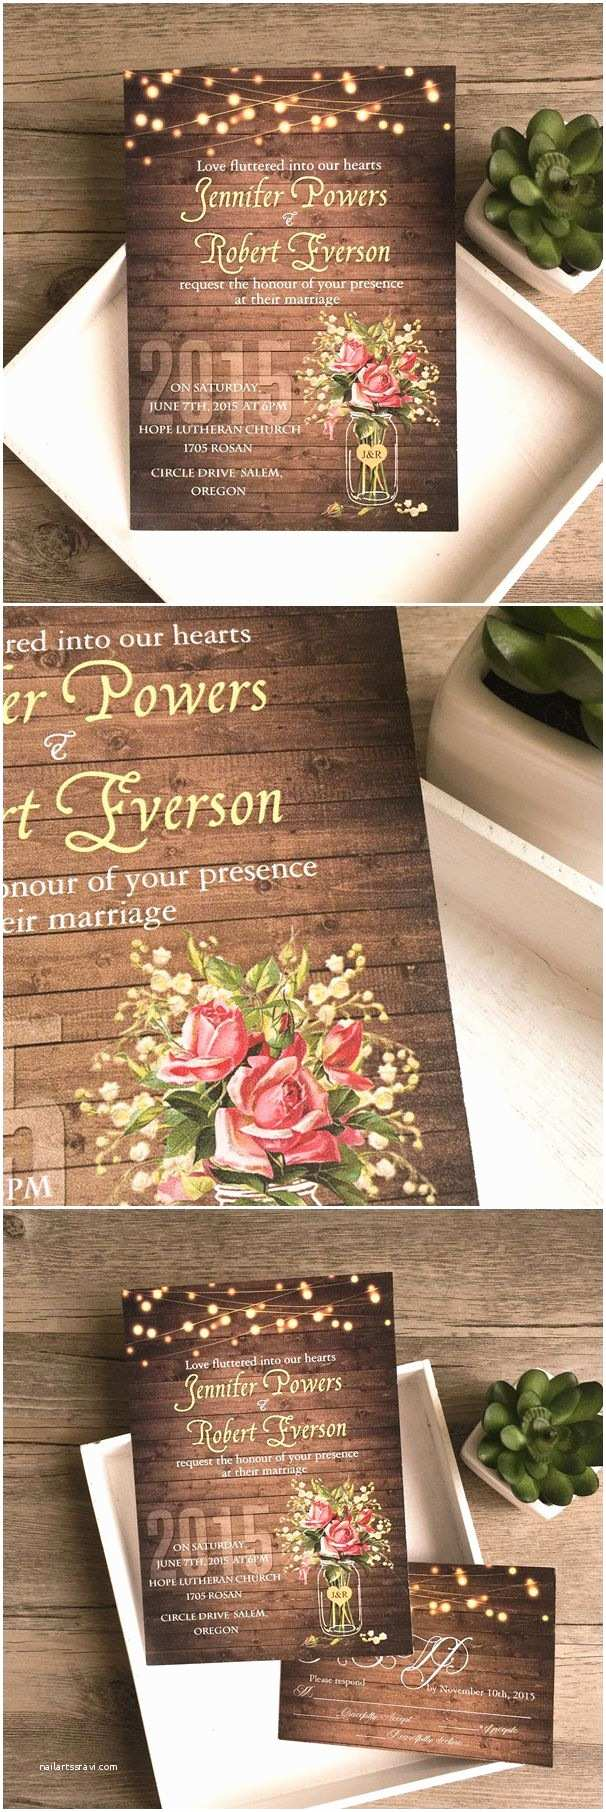 Tagline for Wedding Invitation 25 Best Ideas About Casual Wedding Invitations On